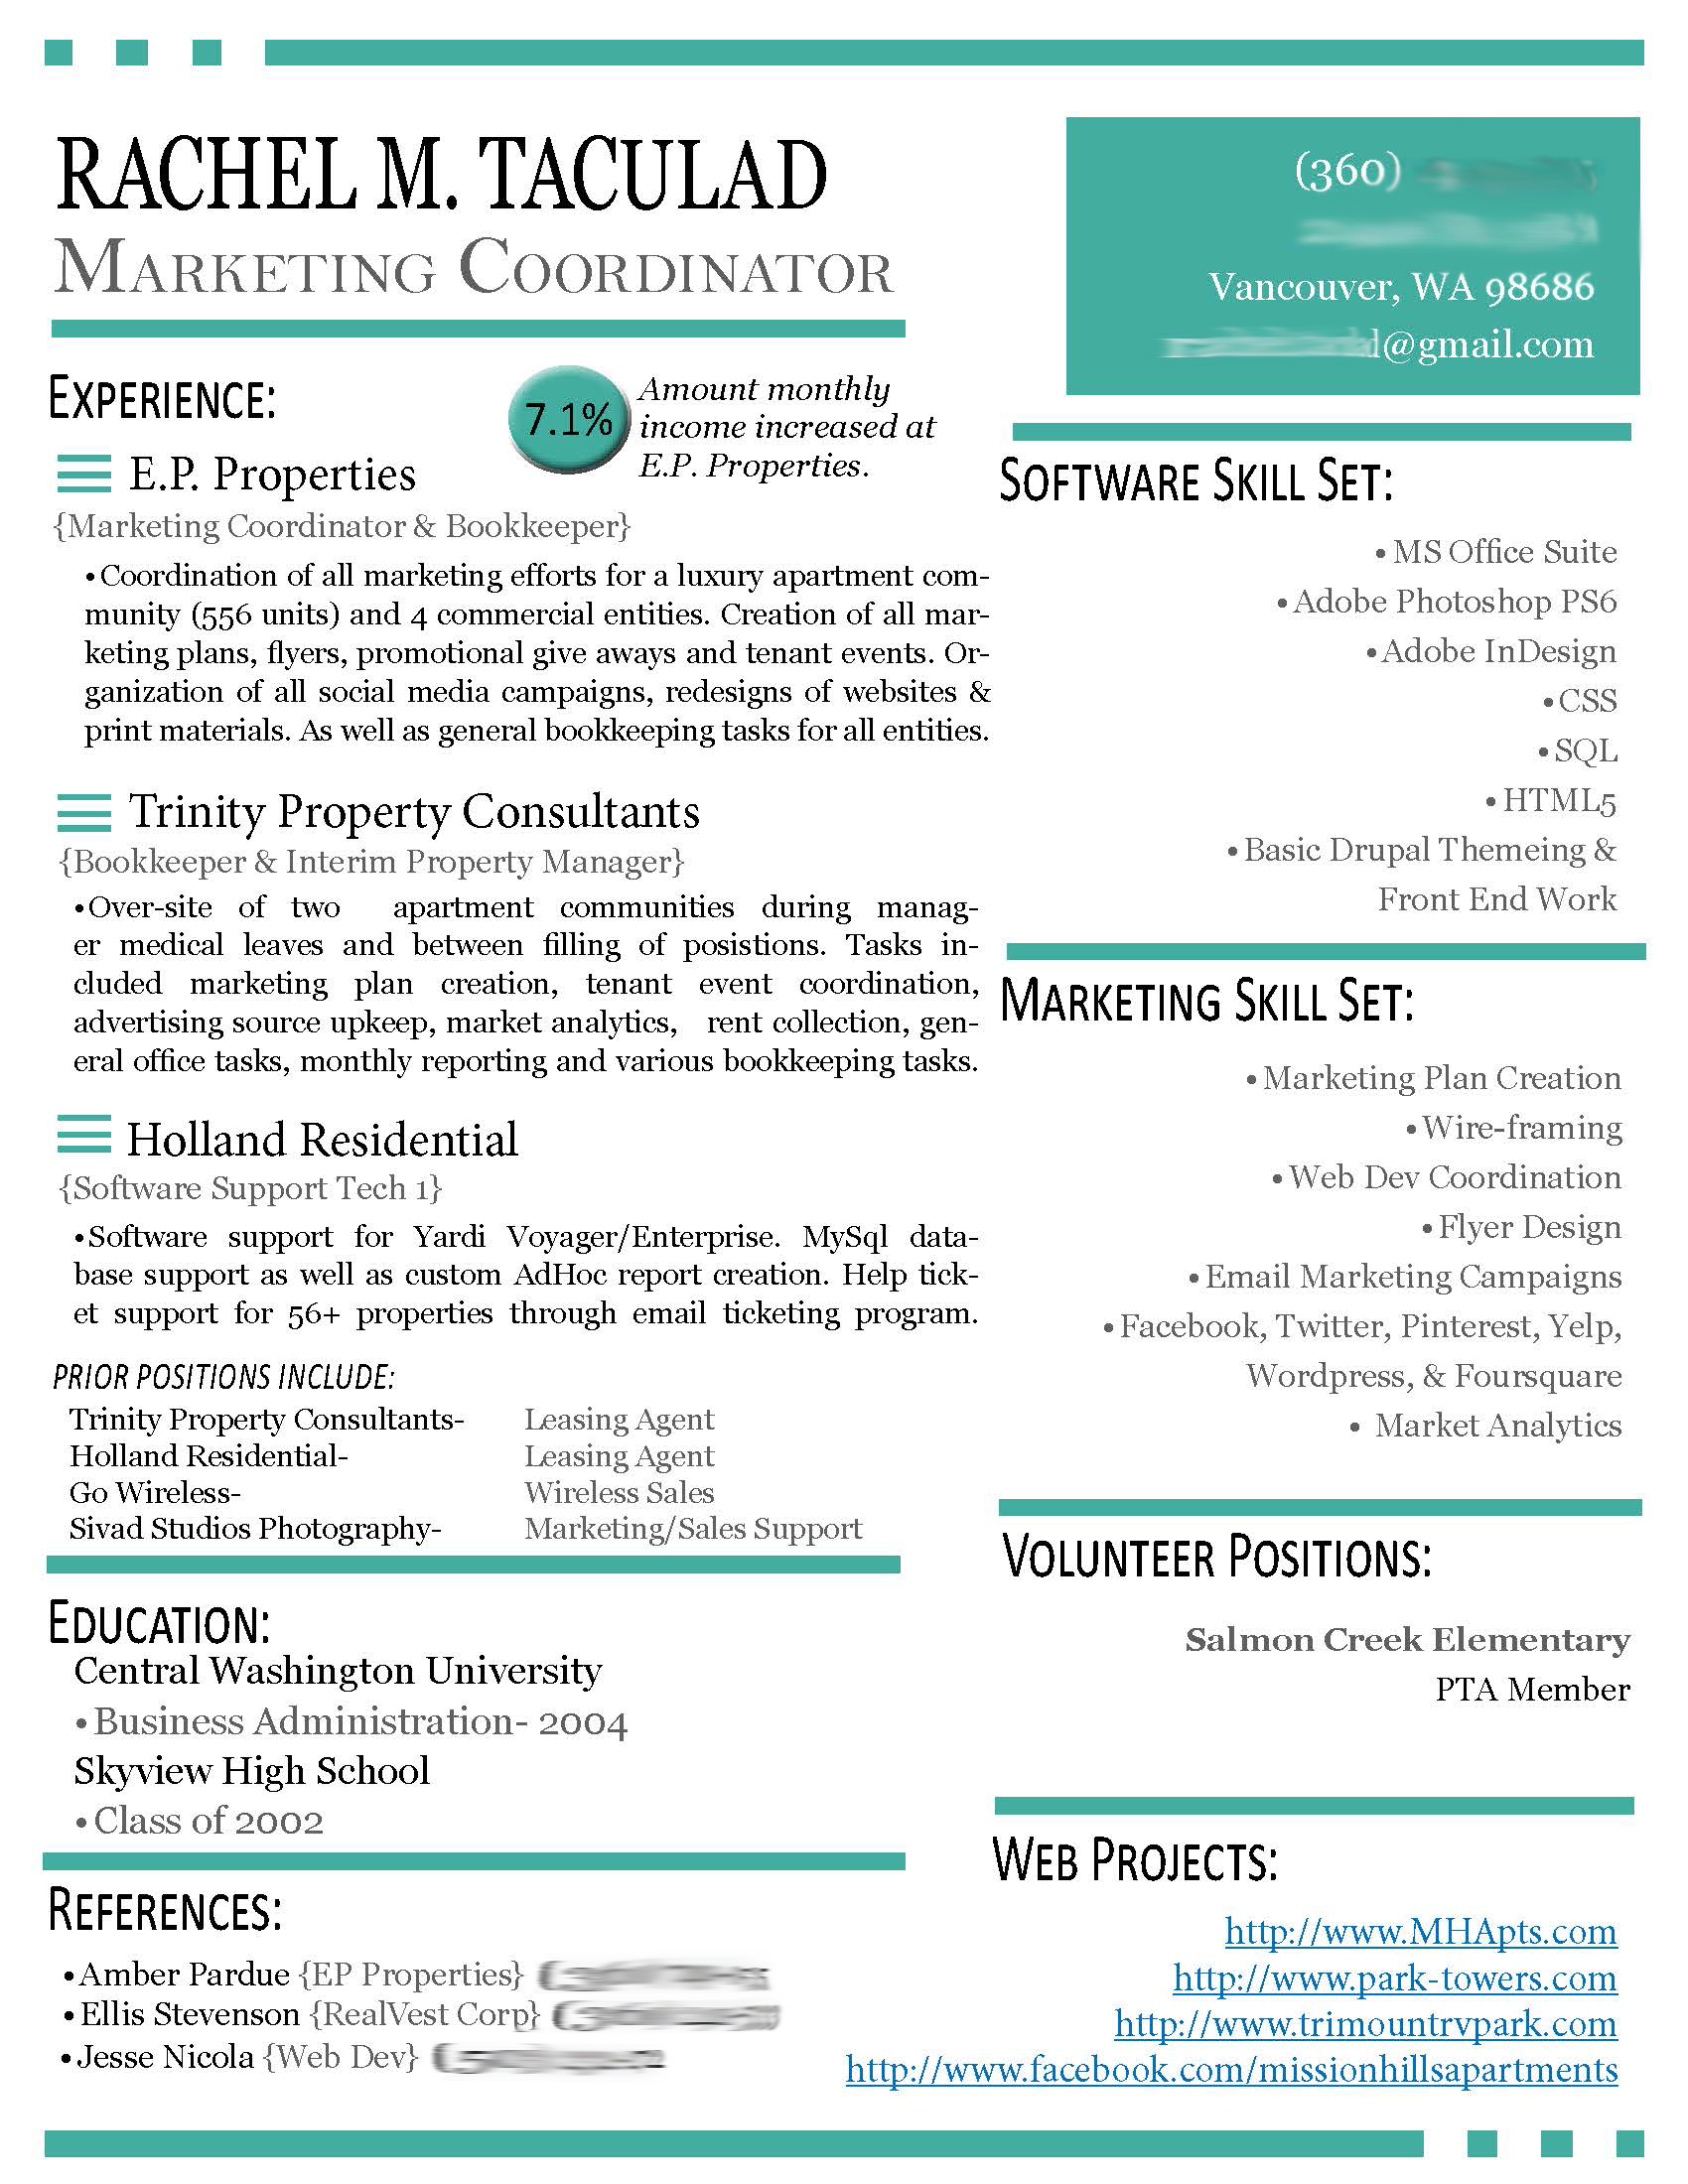 resume for project manager post resume builder resume for project manager post 3 engineering project manager resume samples examples resume2